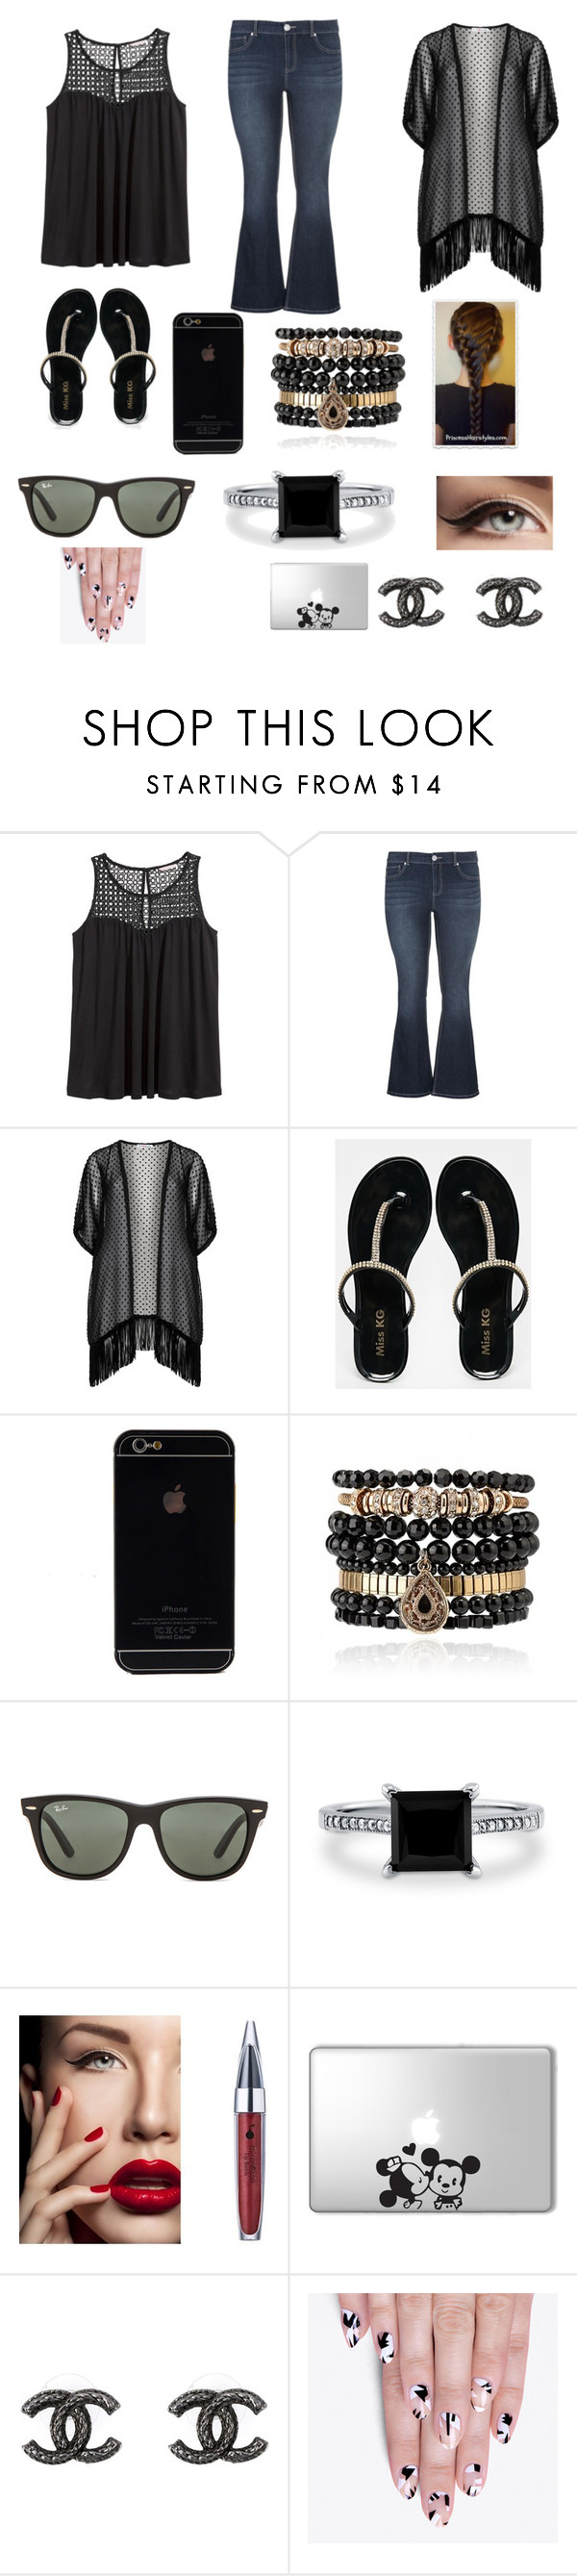 """""""Plus size"""" by emmajean239 ❤ liked on Polyvore featuring H&M, maurices, Maxima, Miss KG, Samantha Wills, Ray-Ban, BERRICLE, Disney, Chanel and alfa.K"""